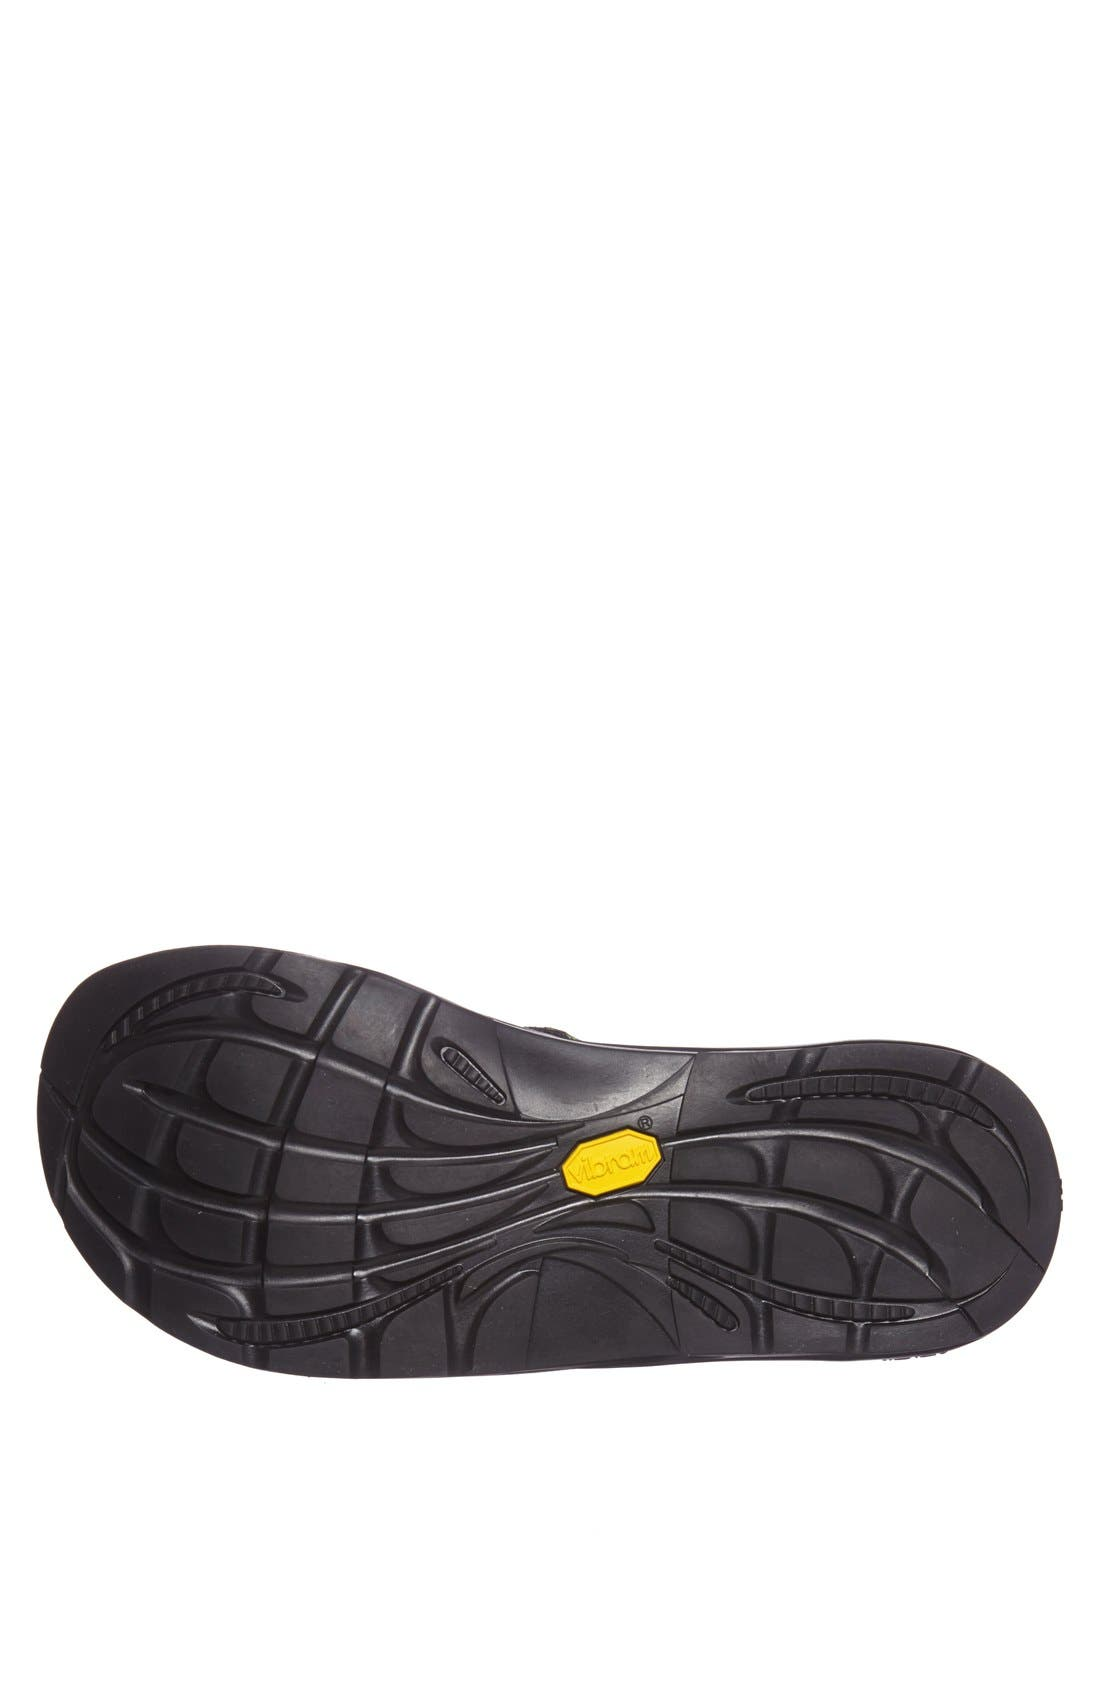 Alternate Image 4  - Chaco 'Flip Vibe' Flip Flop (Men)